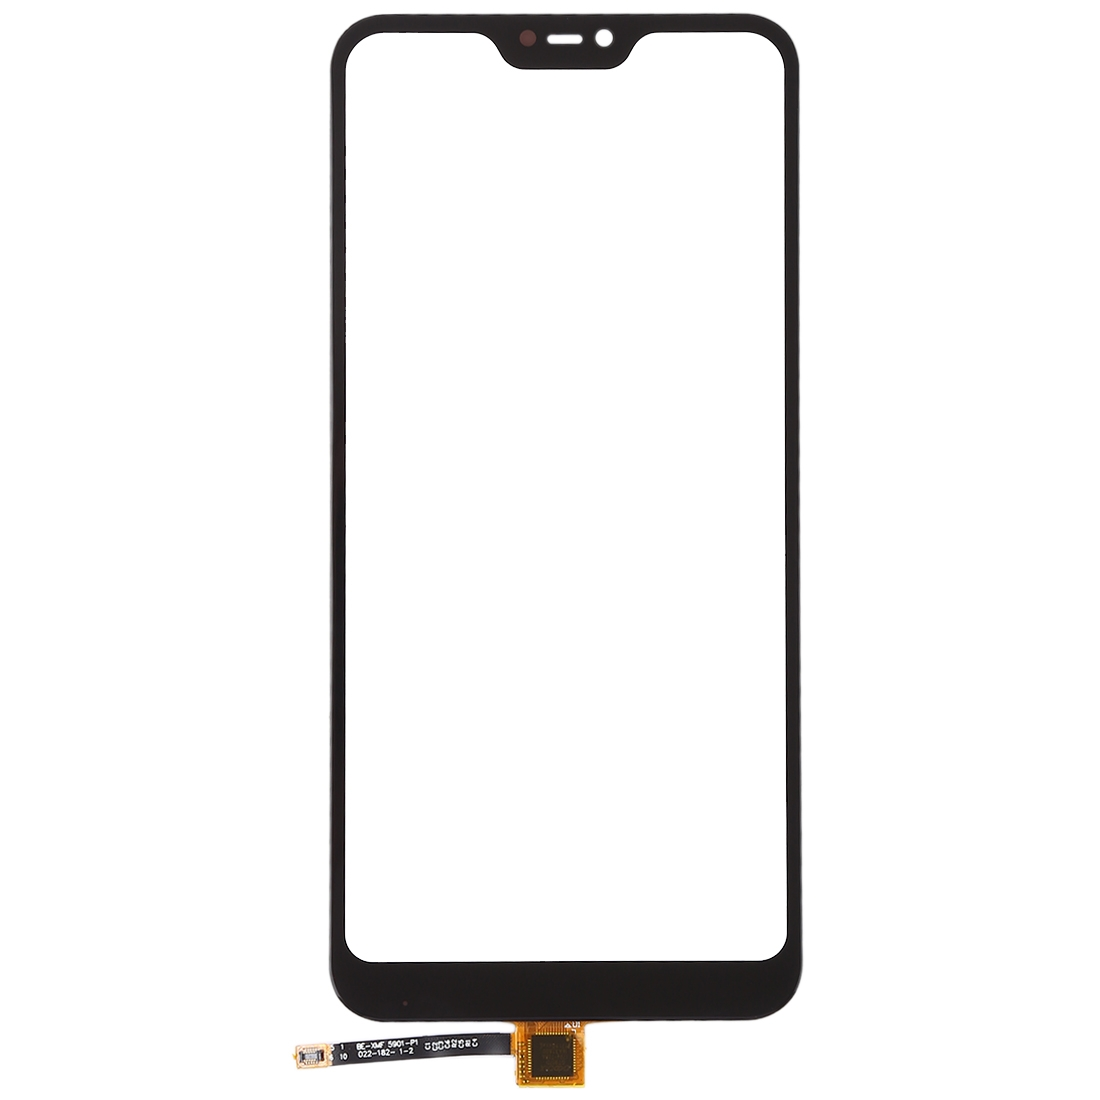 Touch Panel For Xiaomi Redmi 6 Pro Mi A2 Lite Black